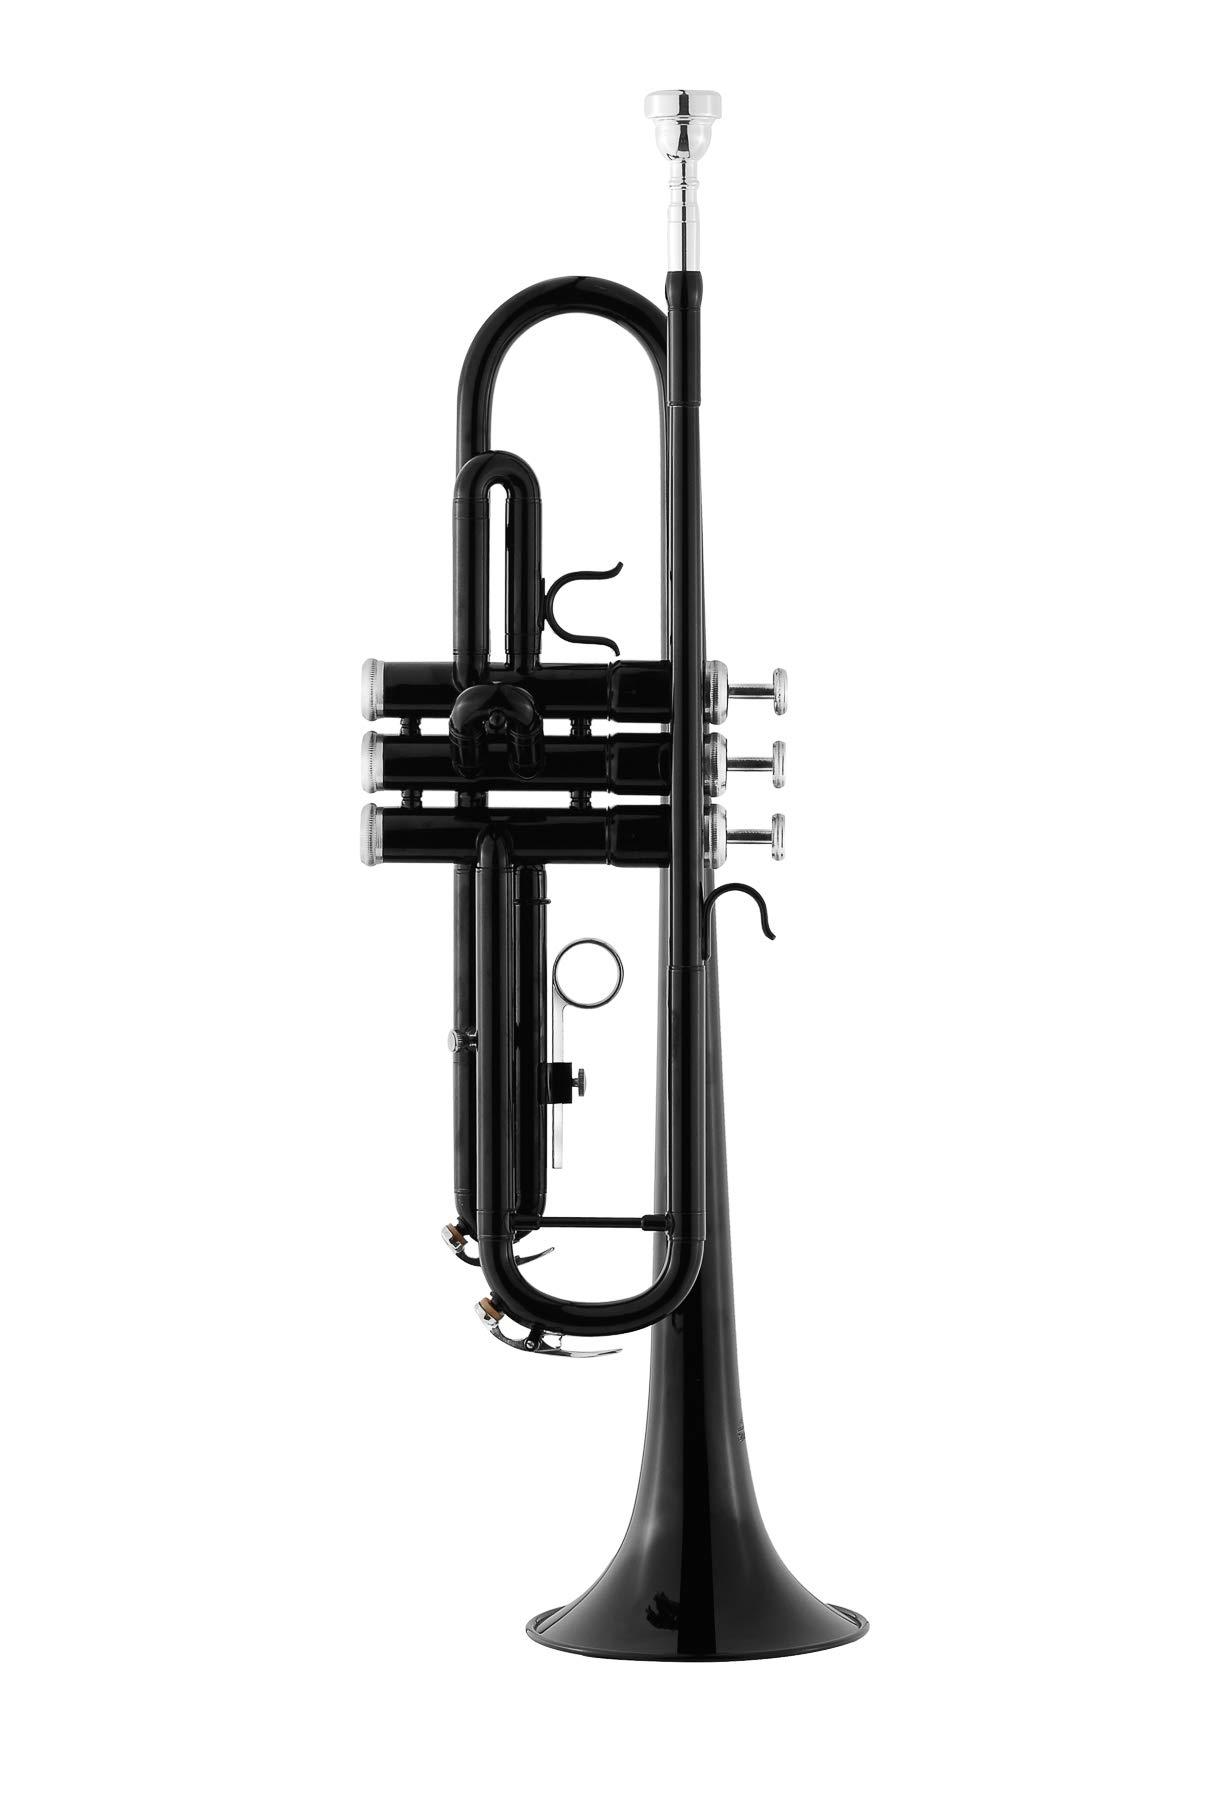 Eastrock Trumpet Brass Standard Bb Trumpet Set for Beginnner, Student with Hard Case, Gloves, 7C Mouthpiece, Trumpet Cleaning Kit(Black) by EastRock